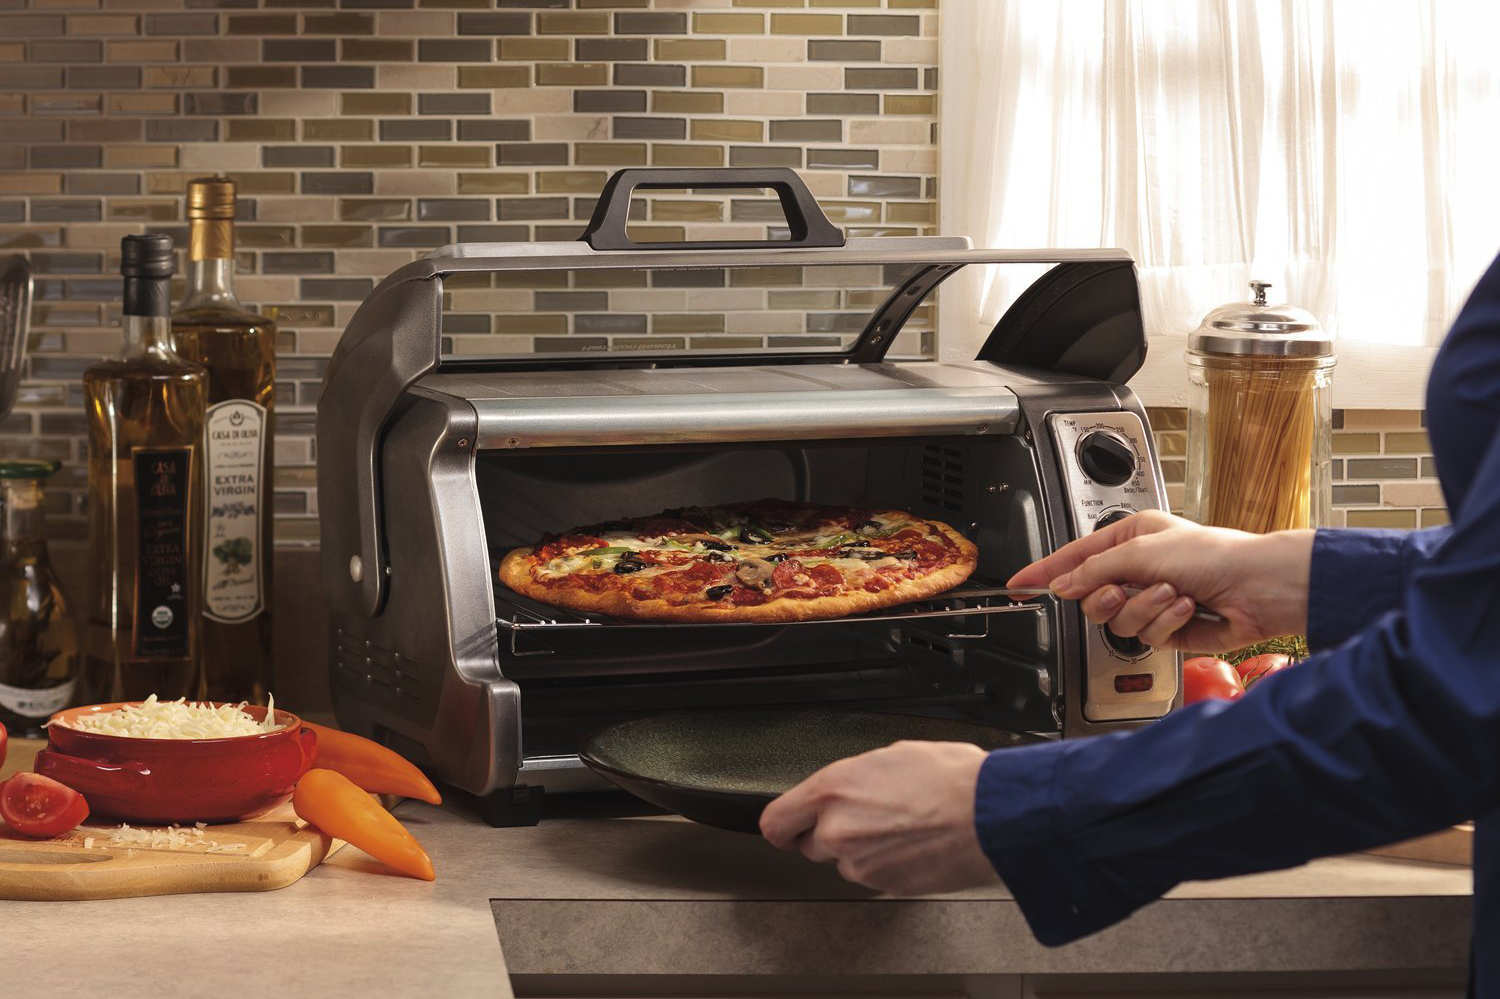 The 7 Best Toaster Ovens of 2016